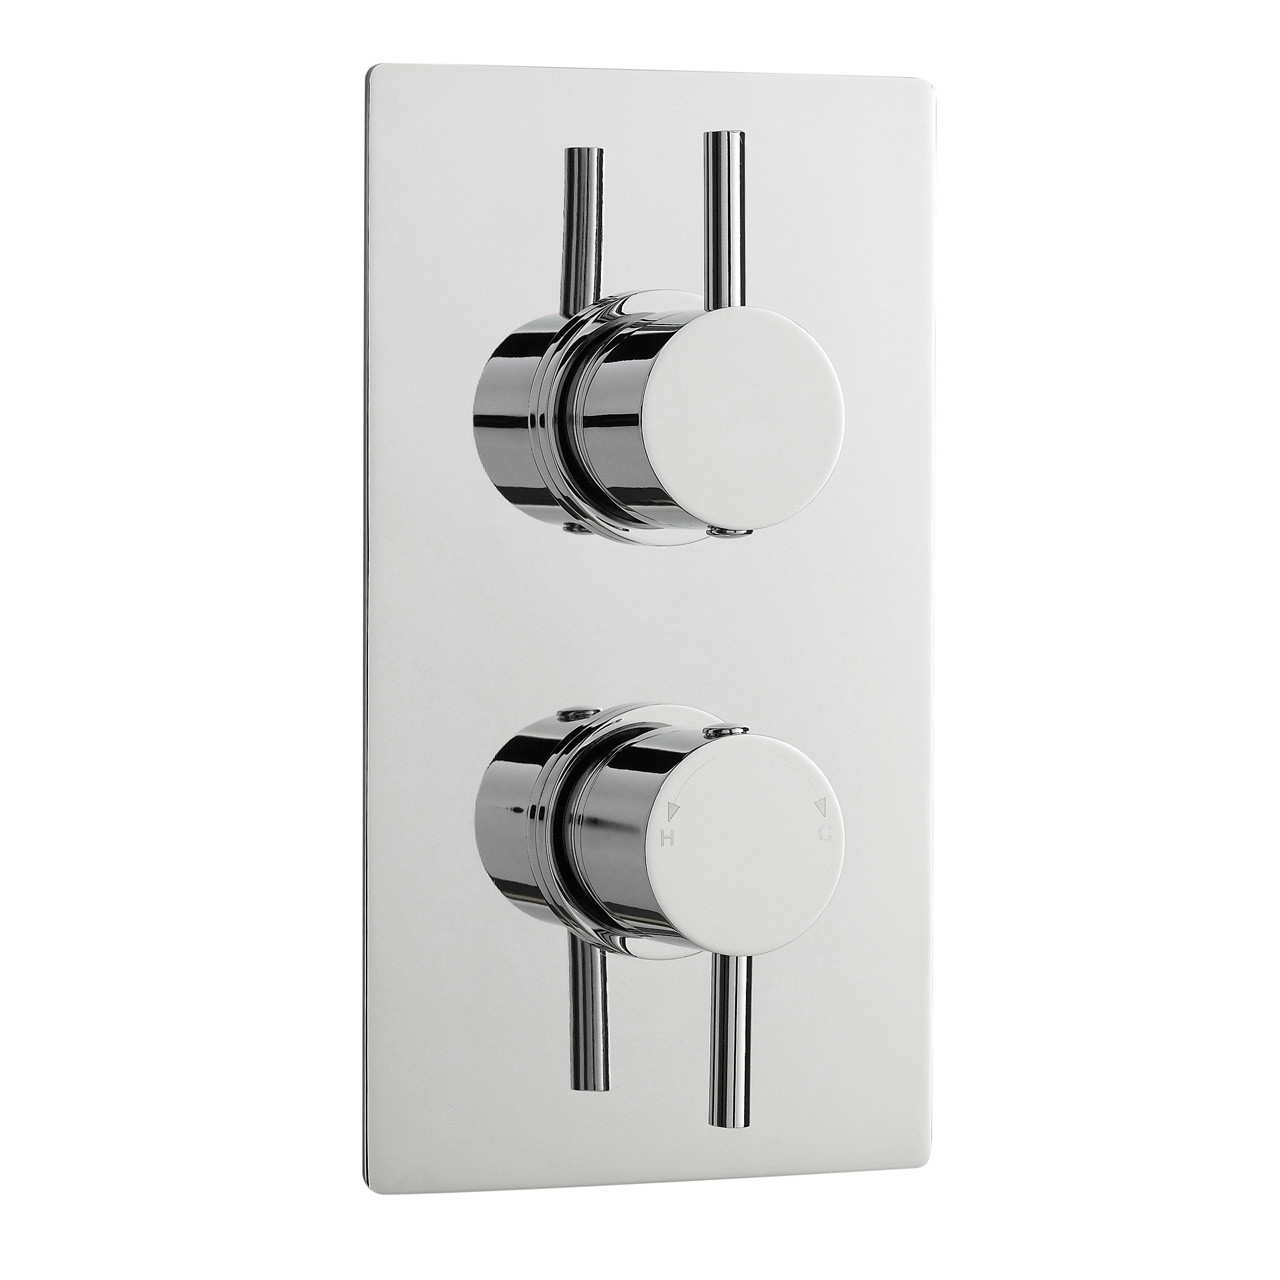 Premier Pioneer Diverter with Minimalist Levers Square Plate - JTY392